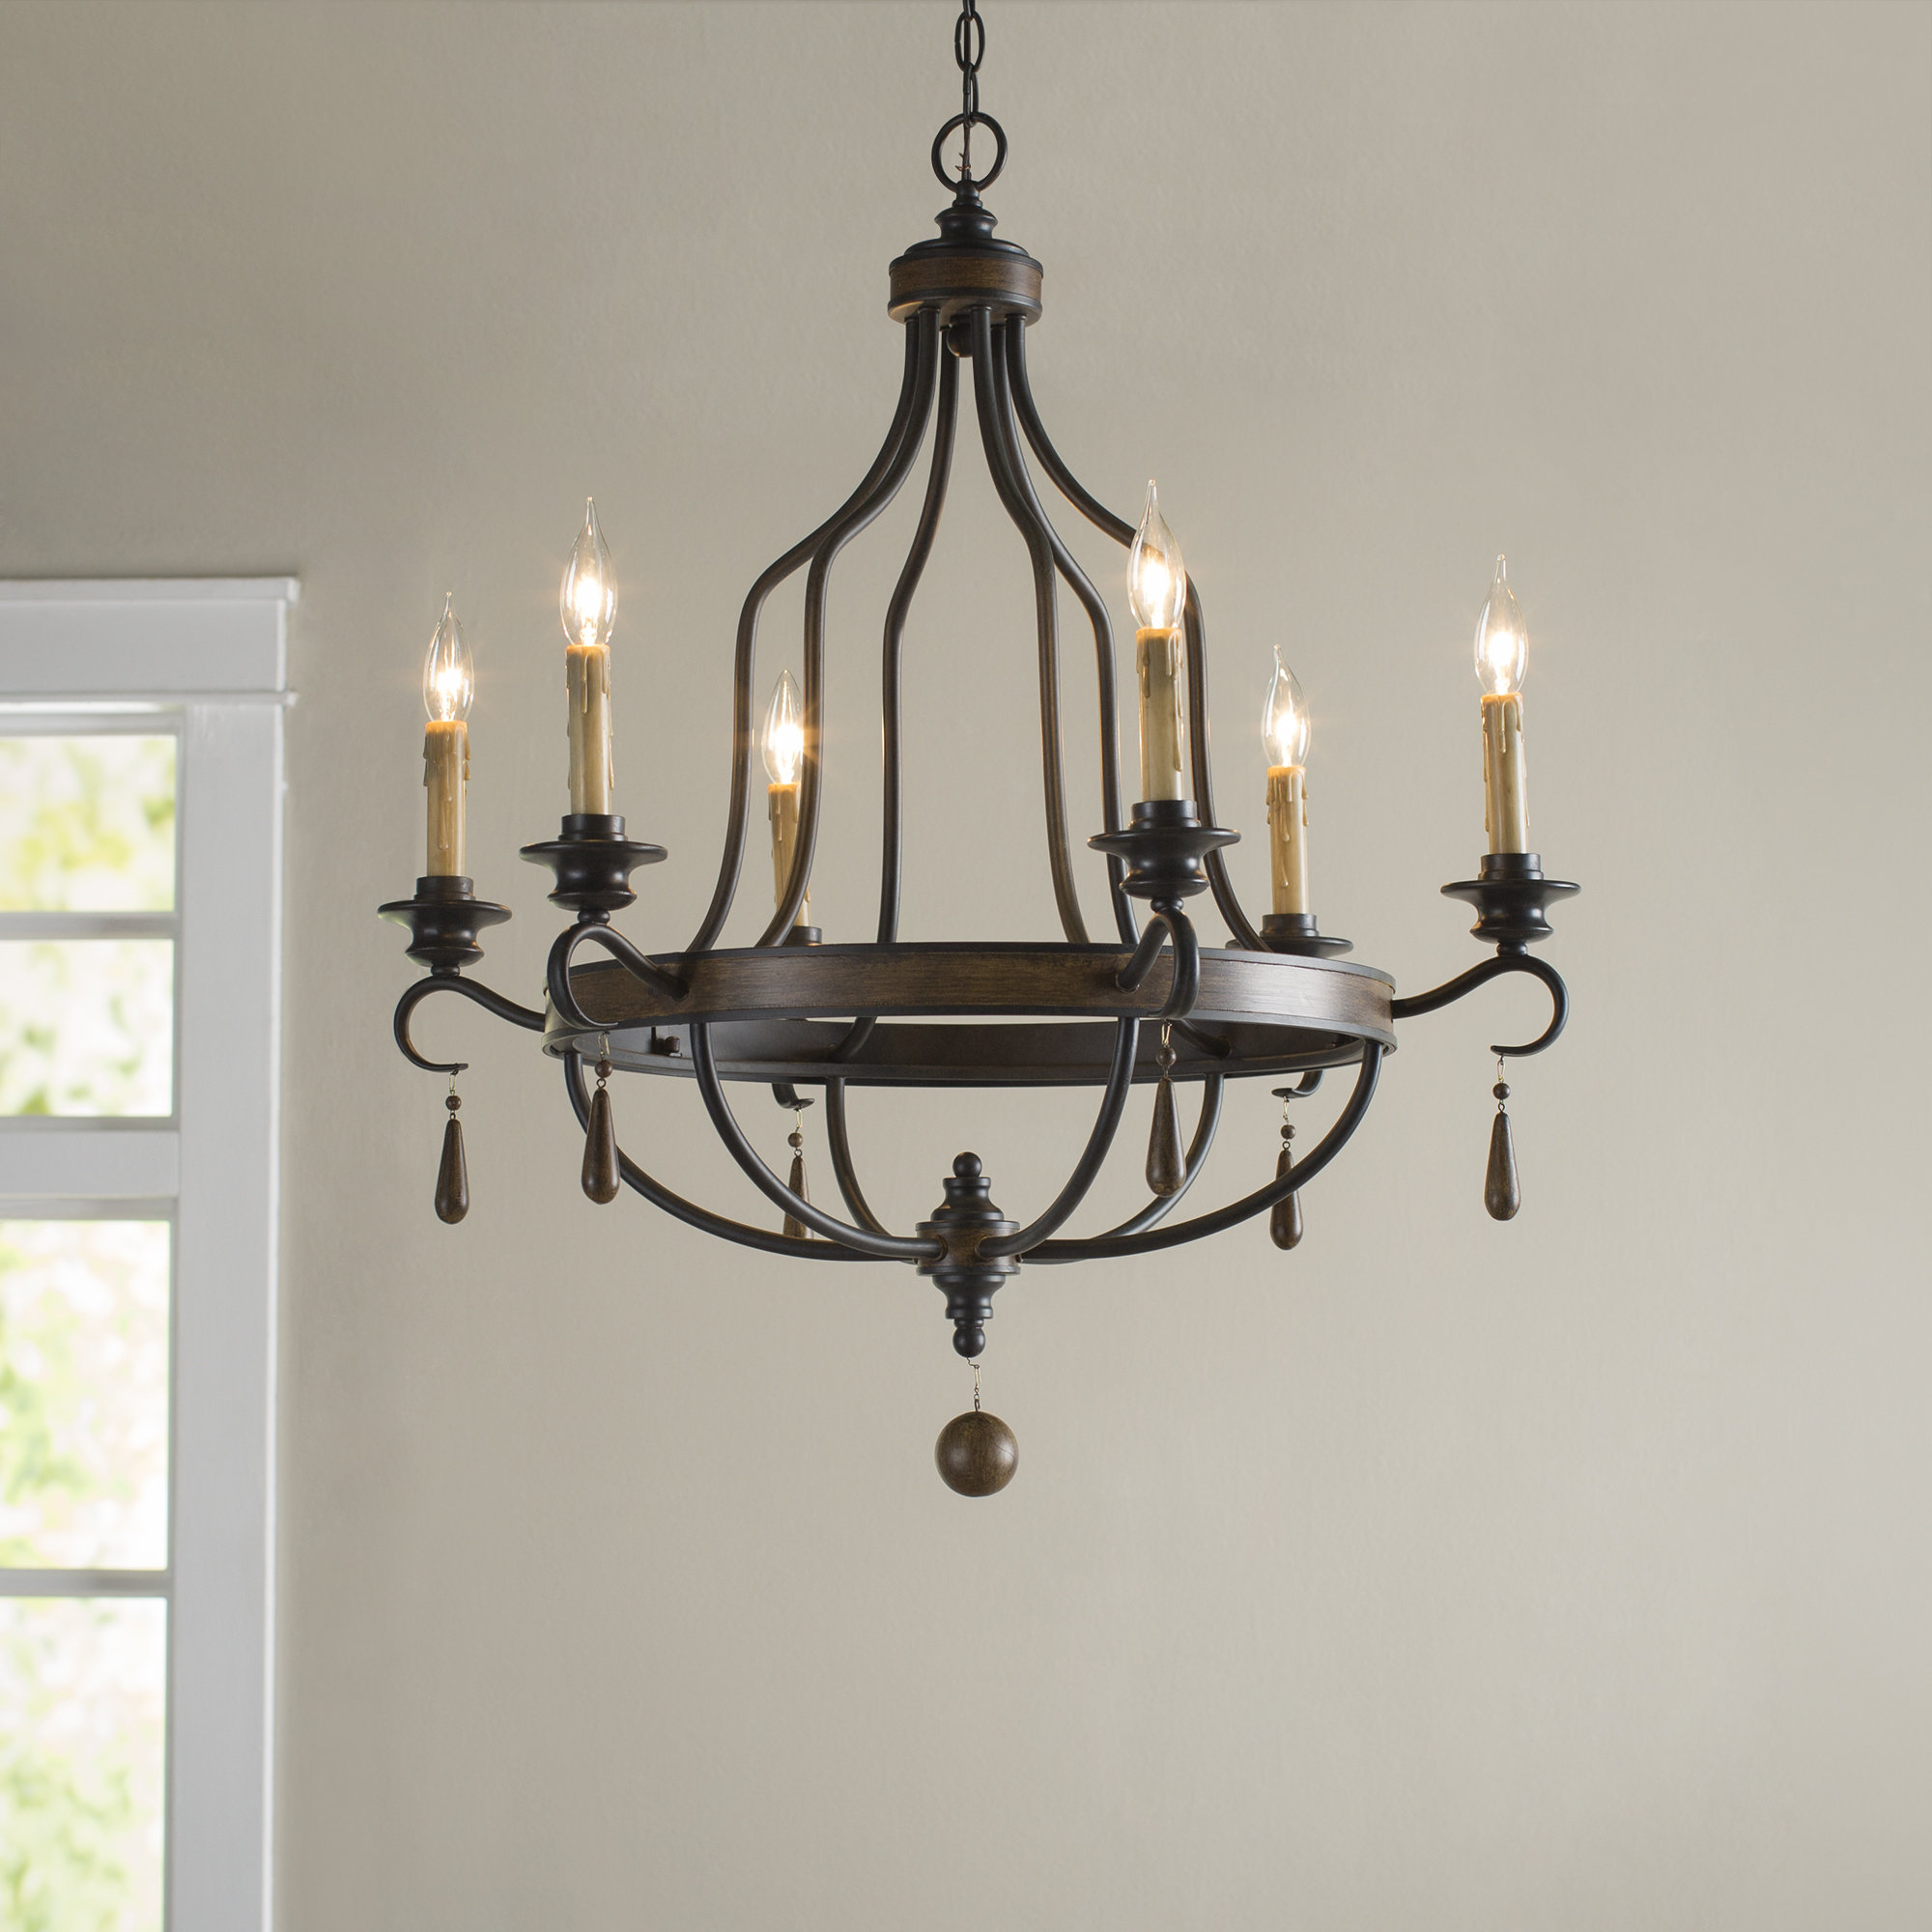 Bouchette Traditional 6-Light Candle Style Chandeliers for Widely used Astoria Grand Windsor Rise 9-Light Chandelier